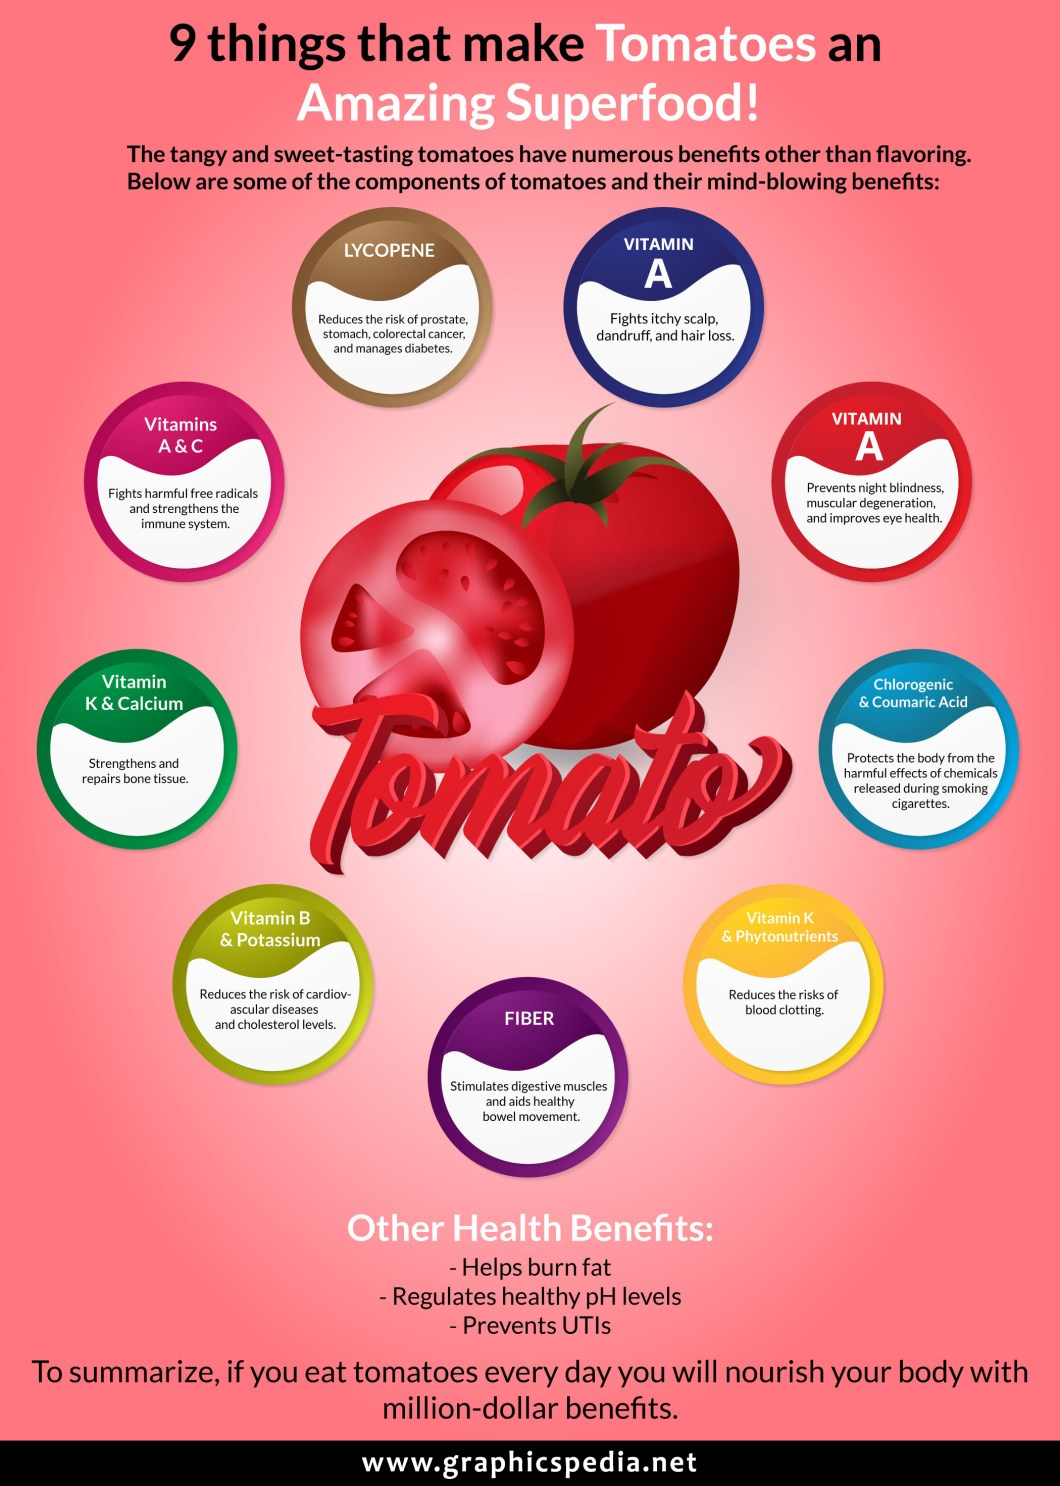 Things that Make Tomatoes an Amazing Superfood! - Infographic